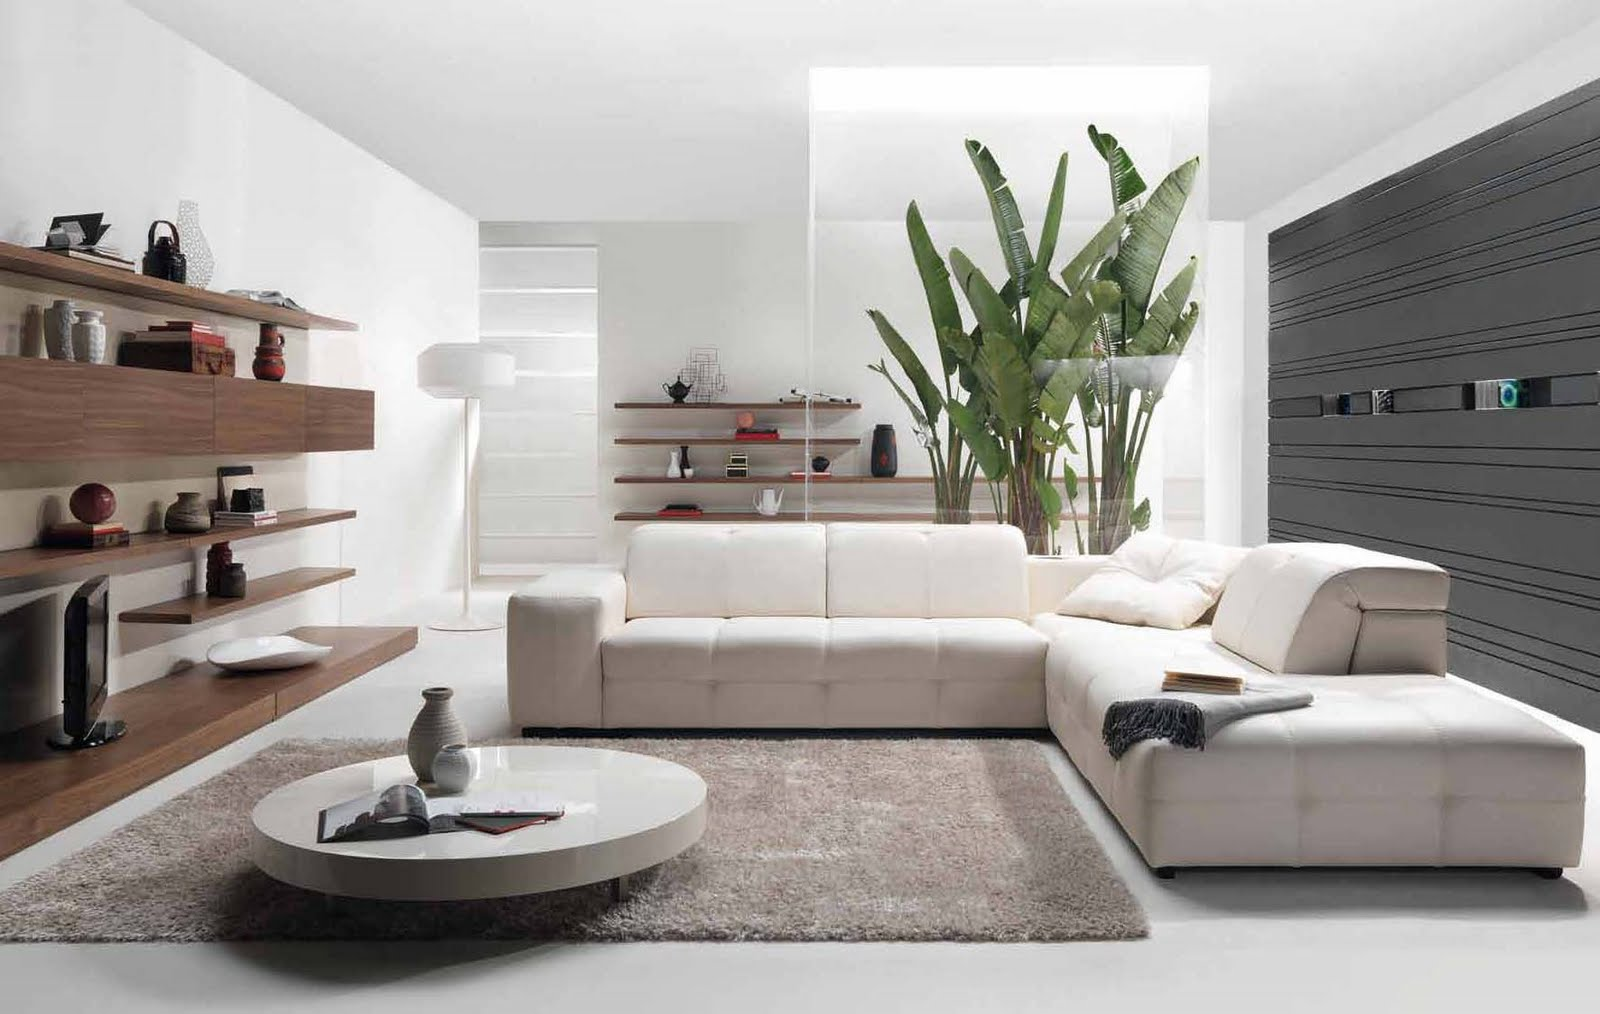 Future house design modern living room interior design for Sitting room interior design